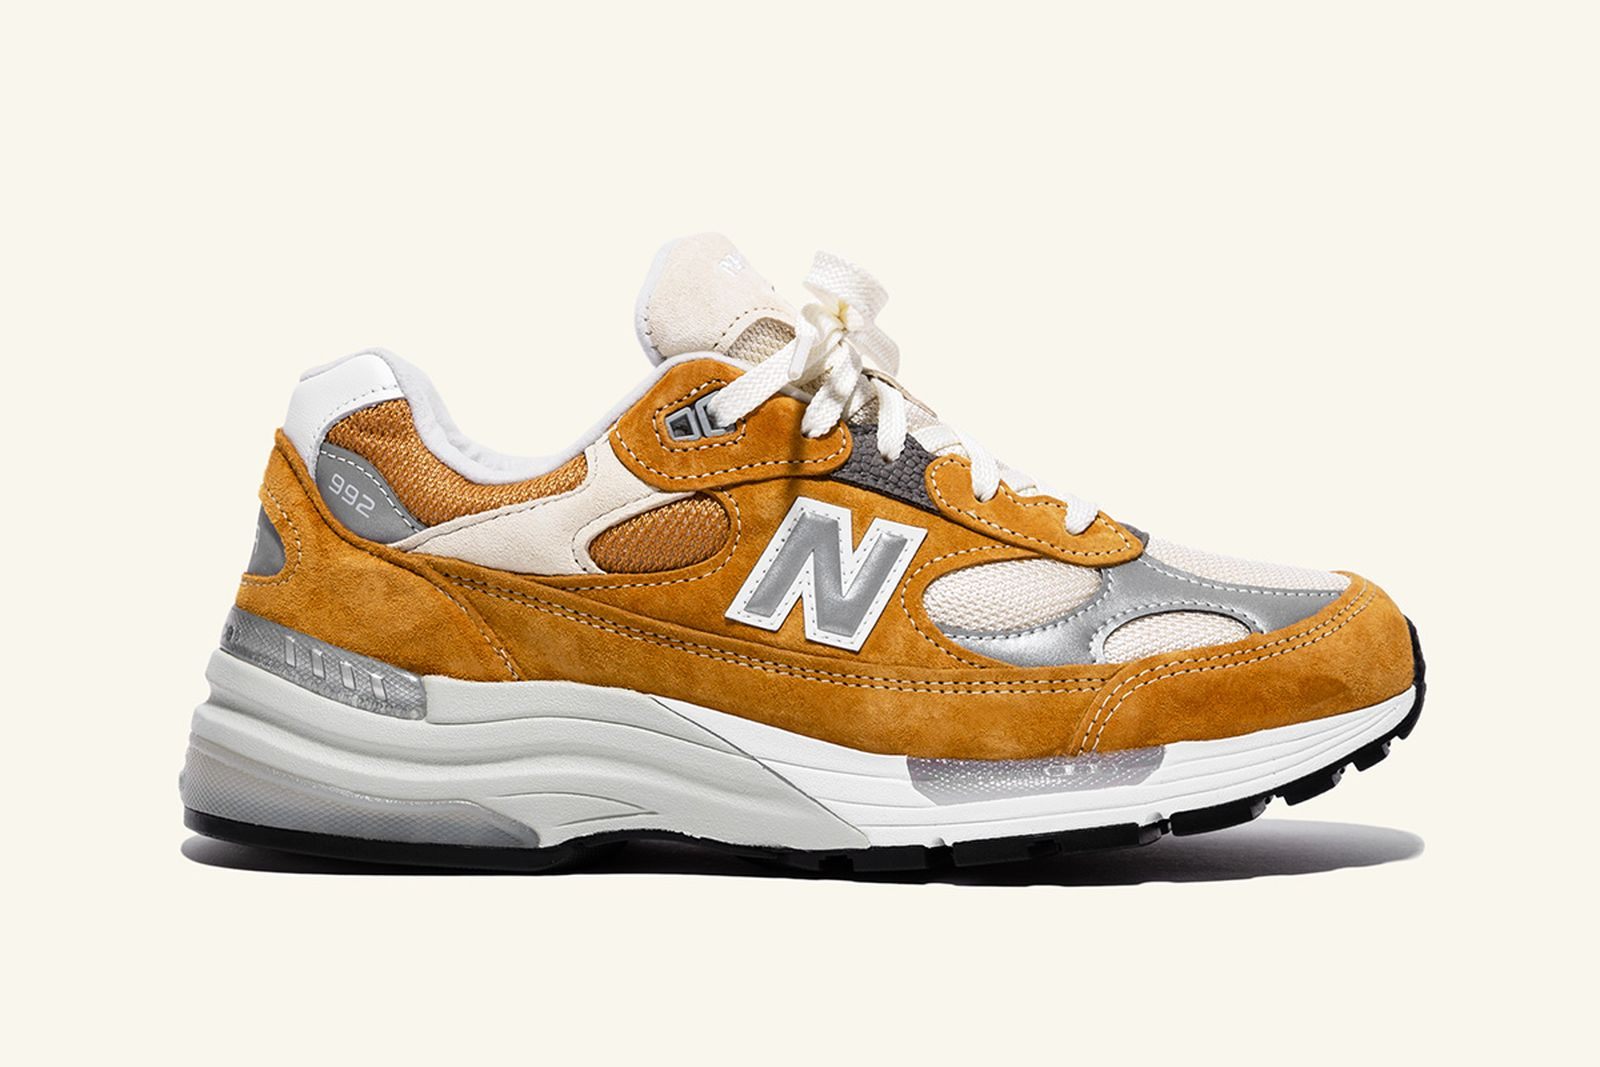 packer-new-balance-992-release-date-price-03